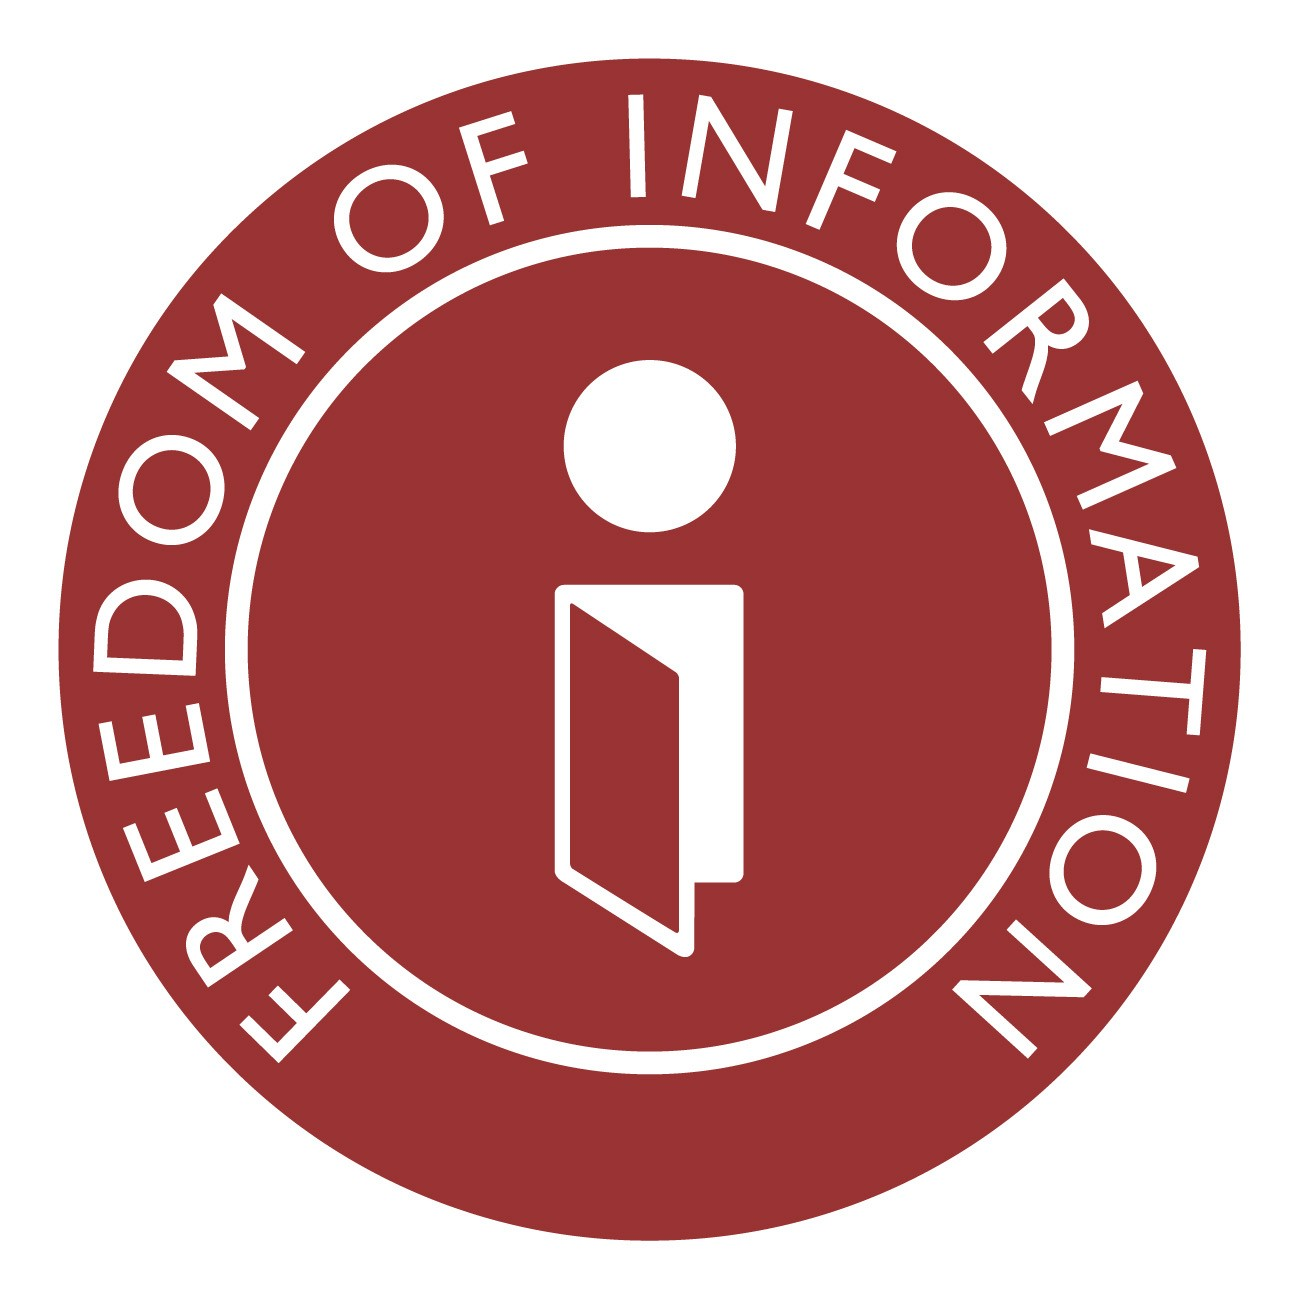 freedom of information How to make a request from public bodies and organisations under the freedom of information act (foia), how much it costs and how long it takes.